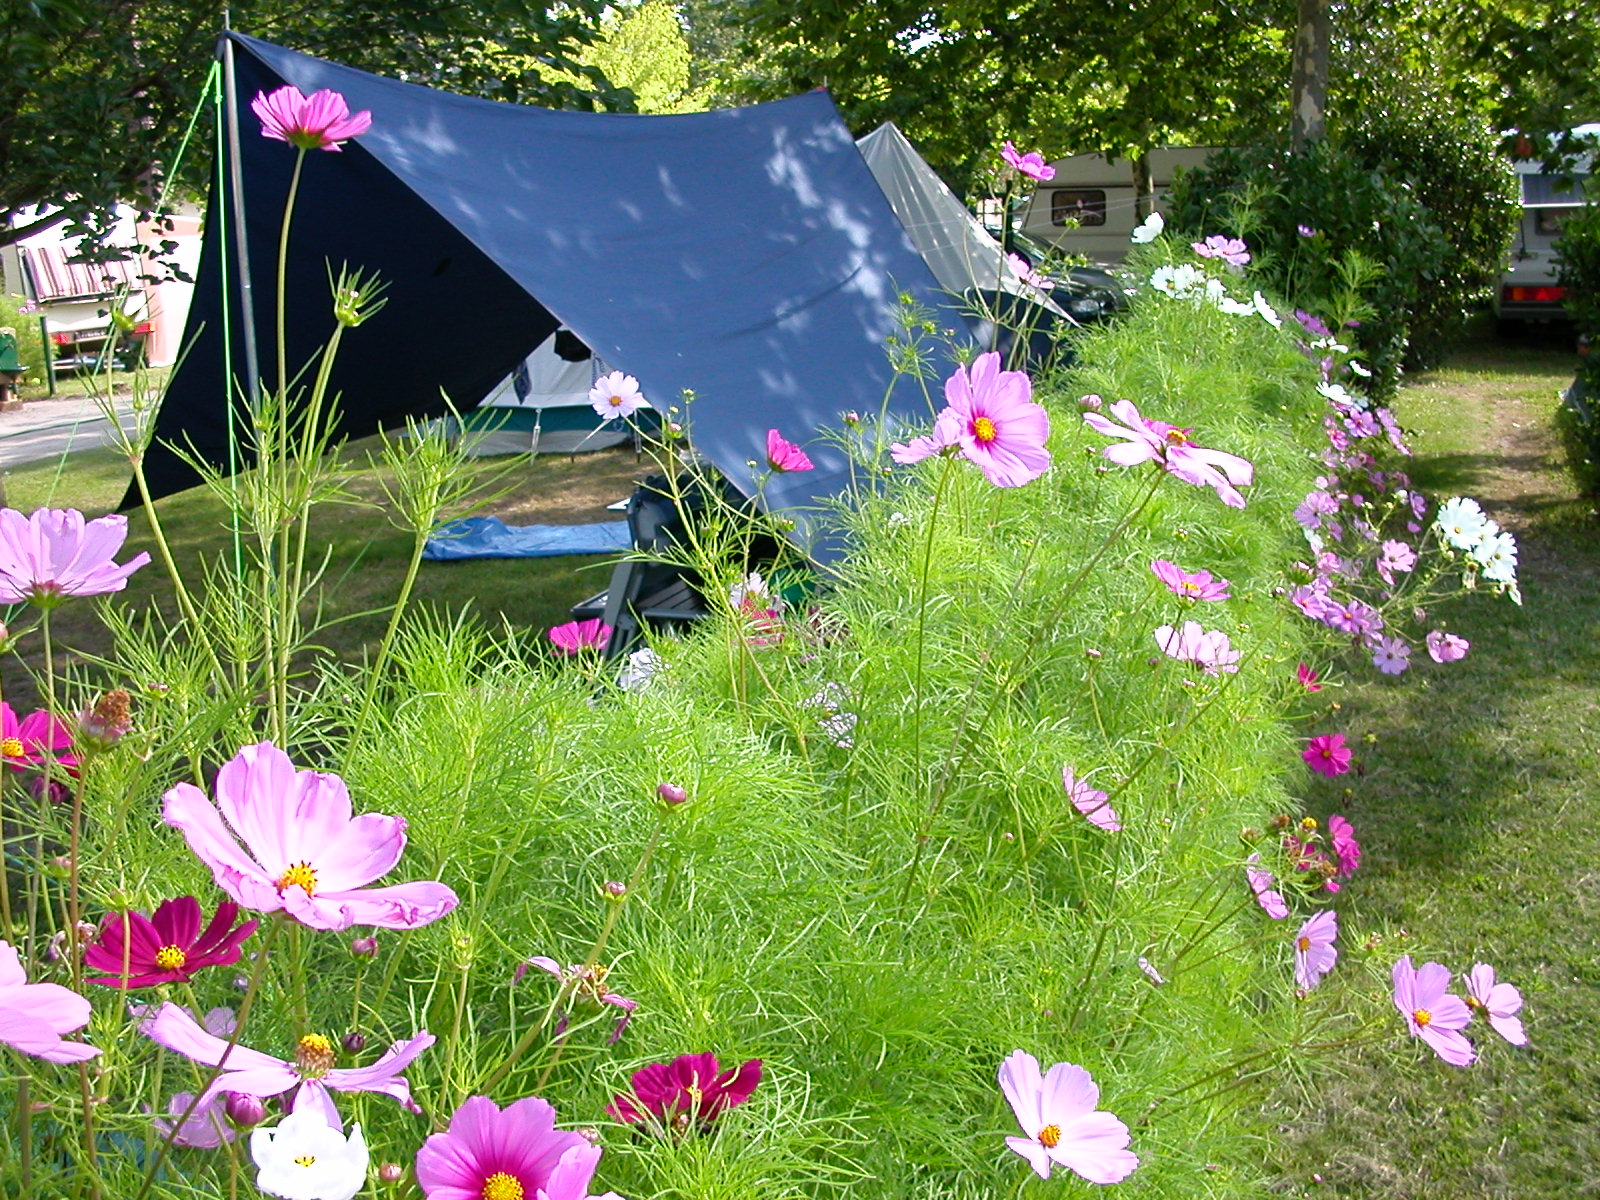 Camping eco friendly Bassin d'Arcachon